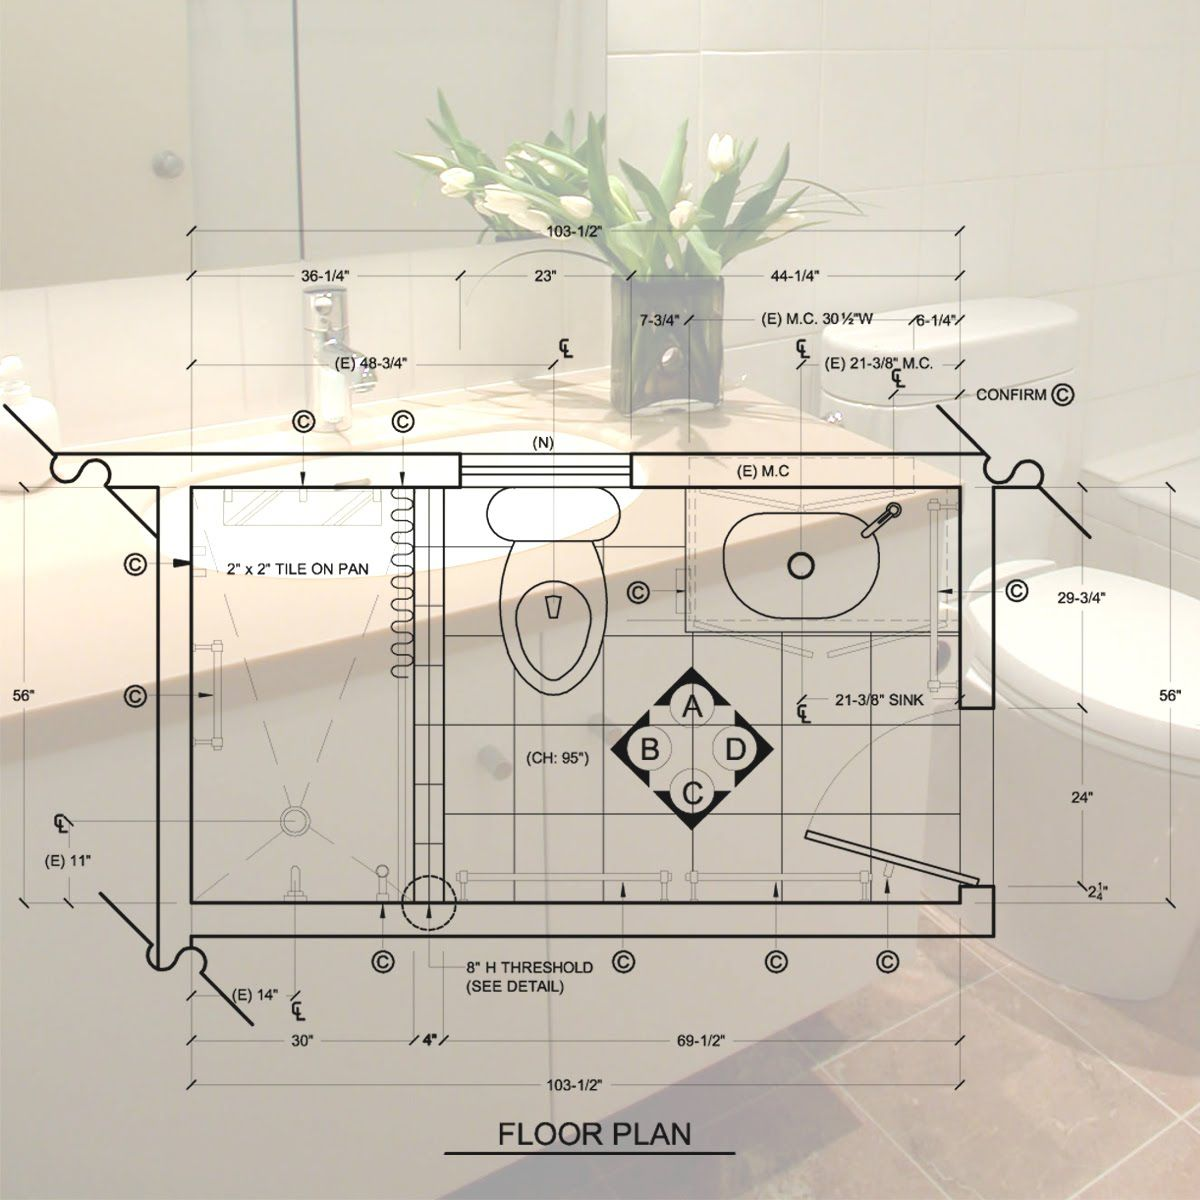 Bathroom drawings design - 8 X 7 Bathroom Layout Ideas